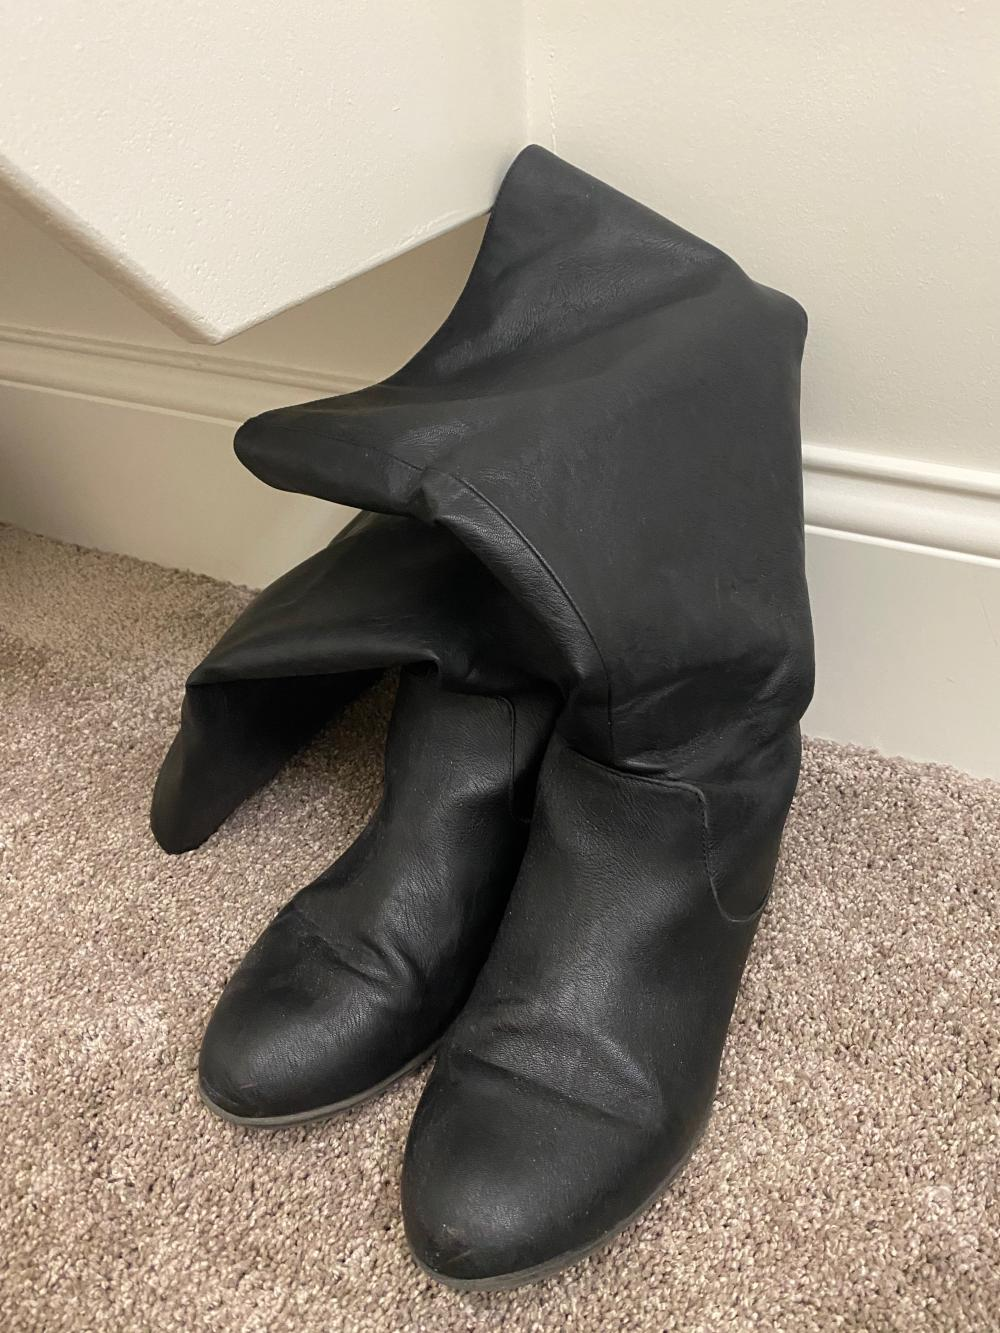 AMERICAN EAGLE SIZE 11 WOMENS BOOTS